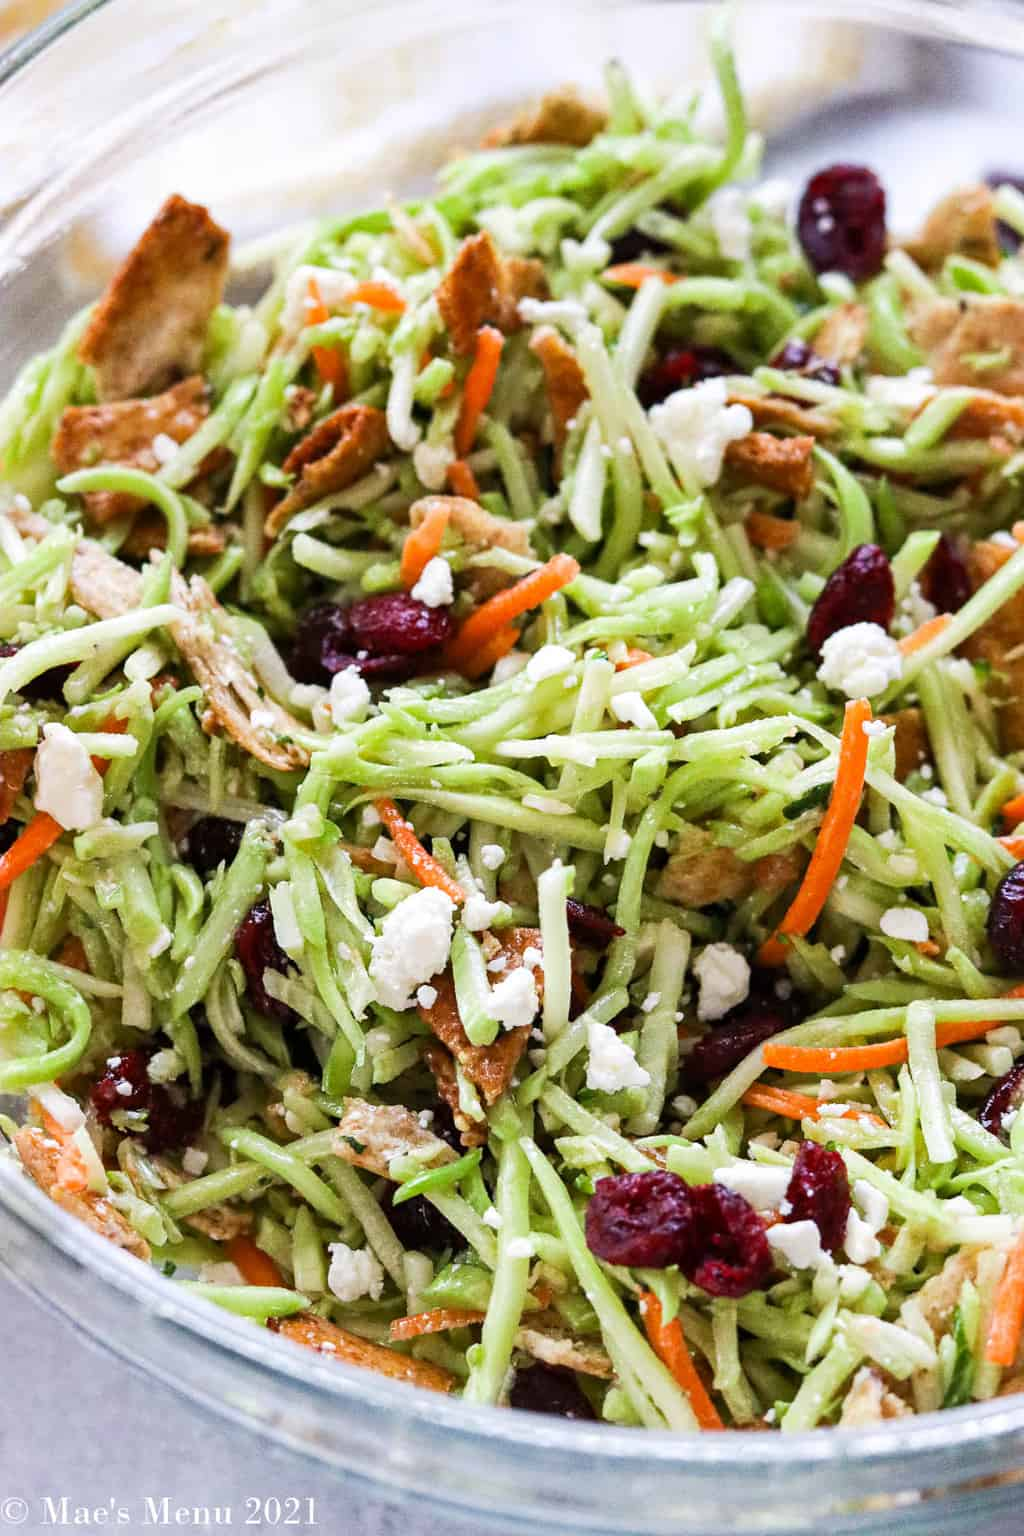 An up-close shot of a bowl of the broccoli slaw recipe